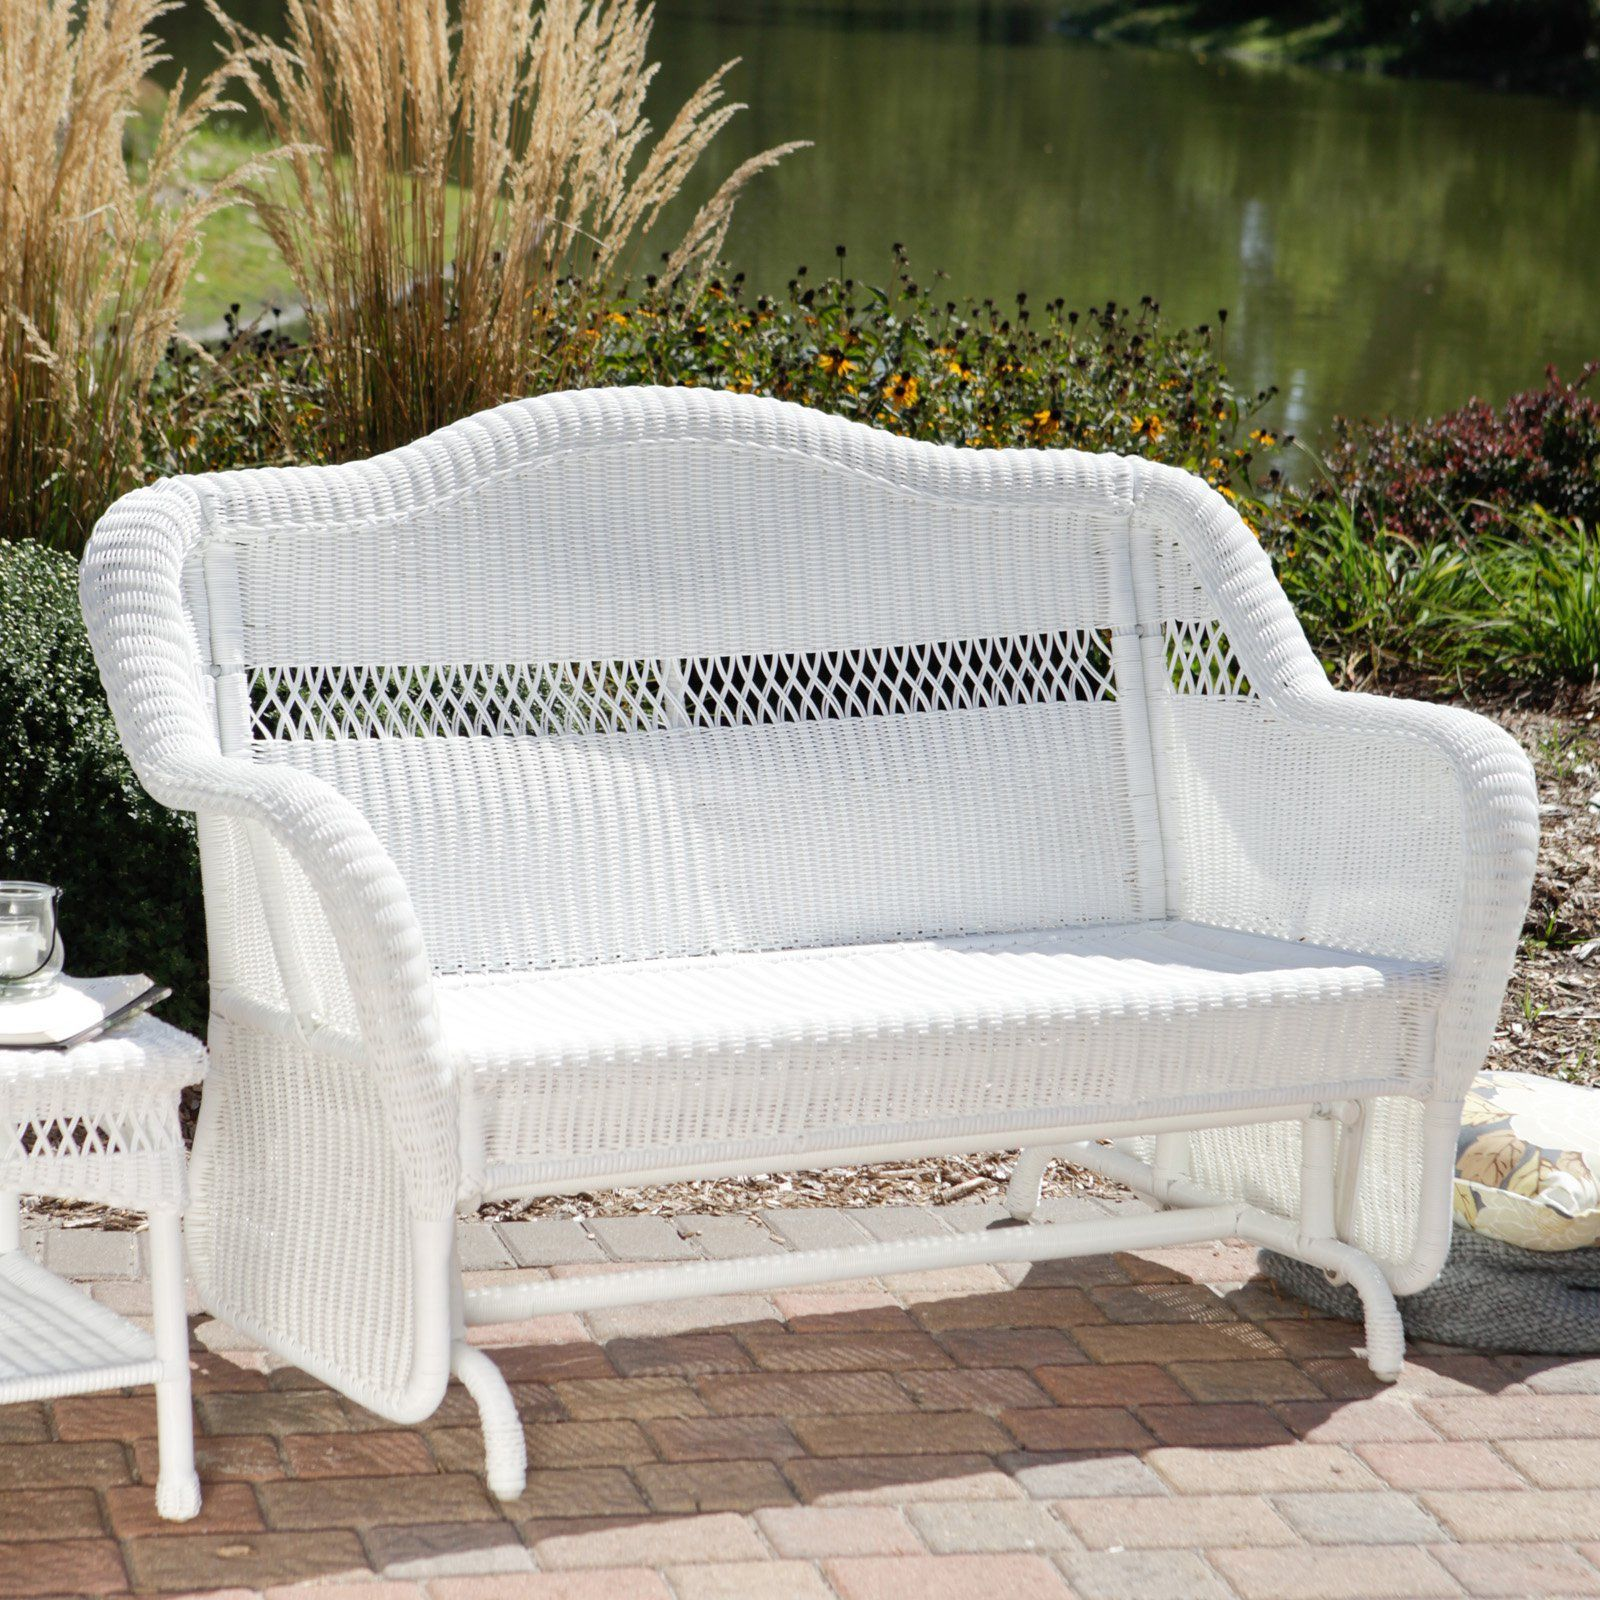 Coral coast casco bay resin wicker outdoor glider loveseat white